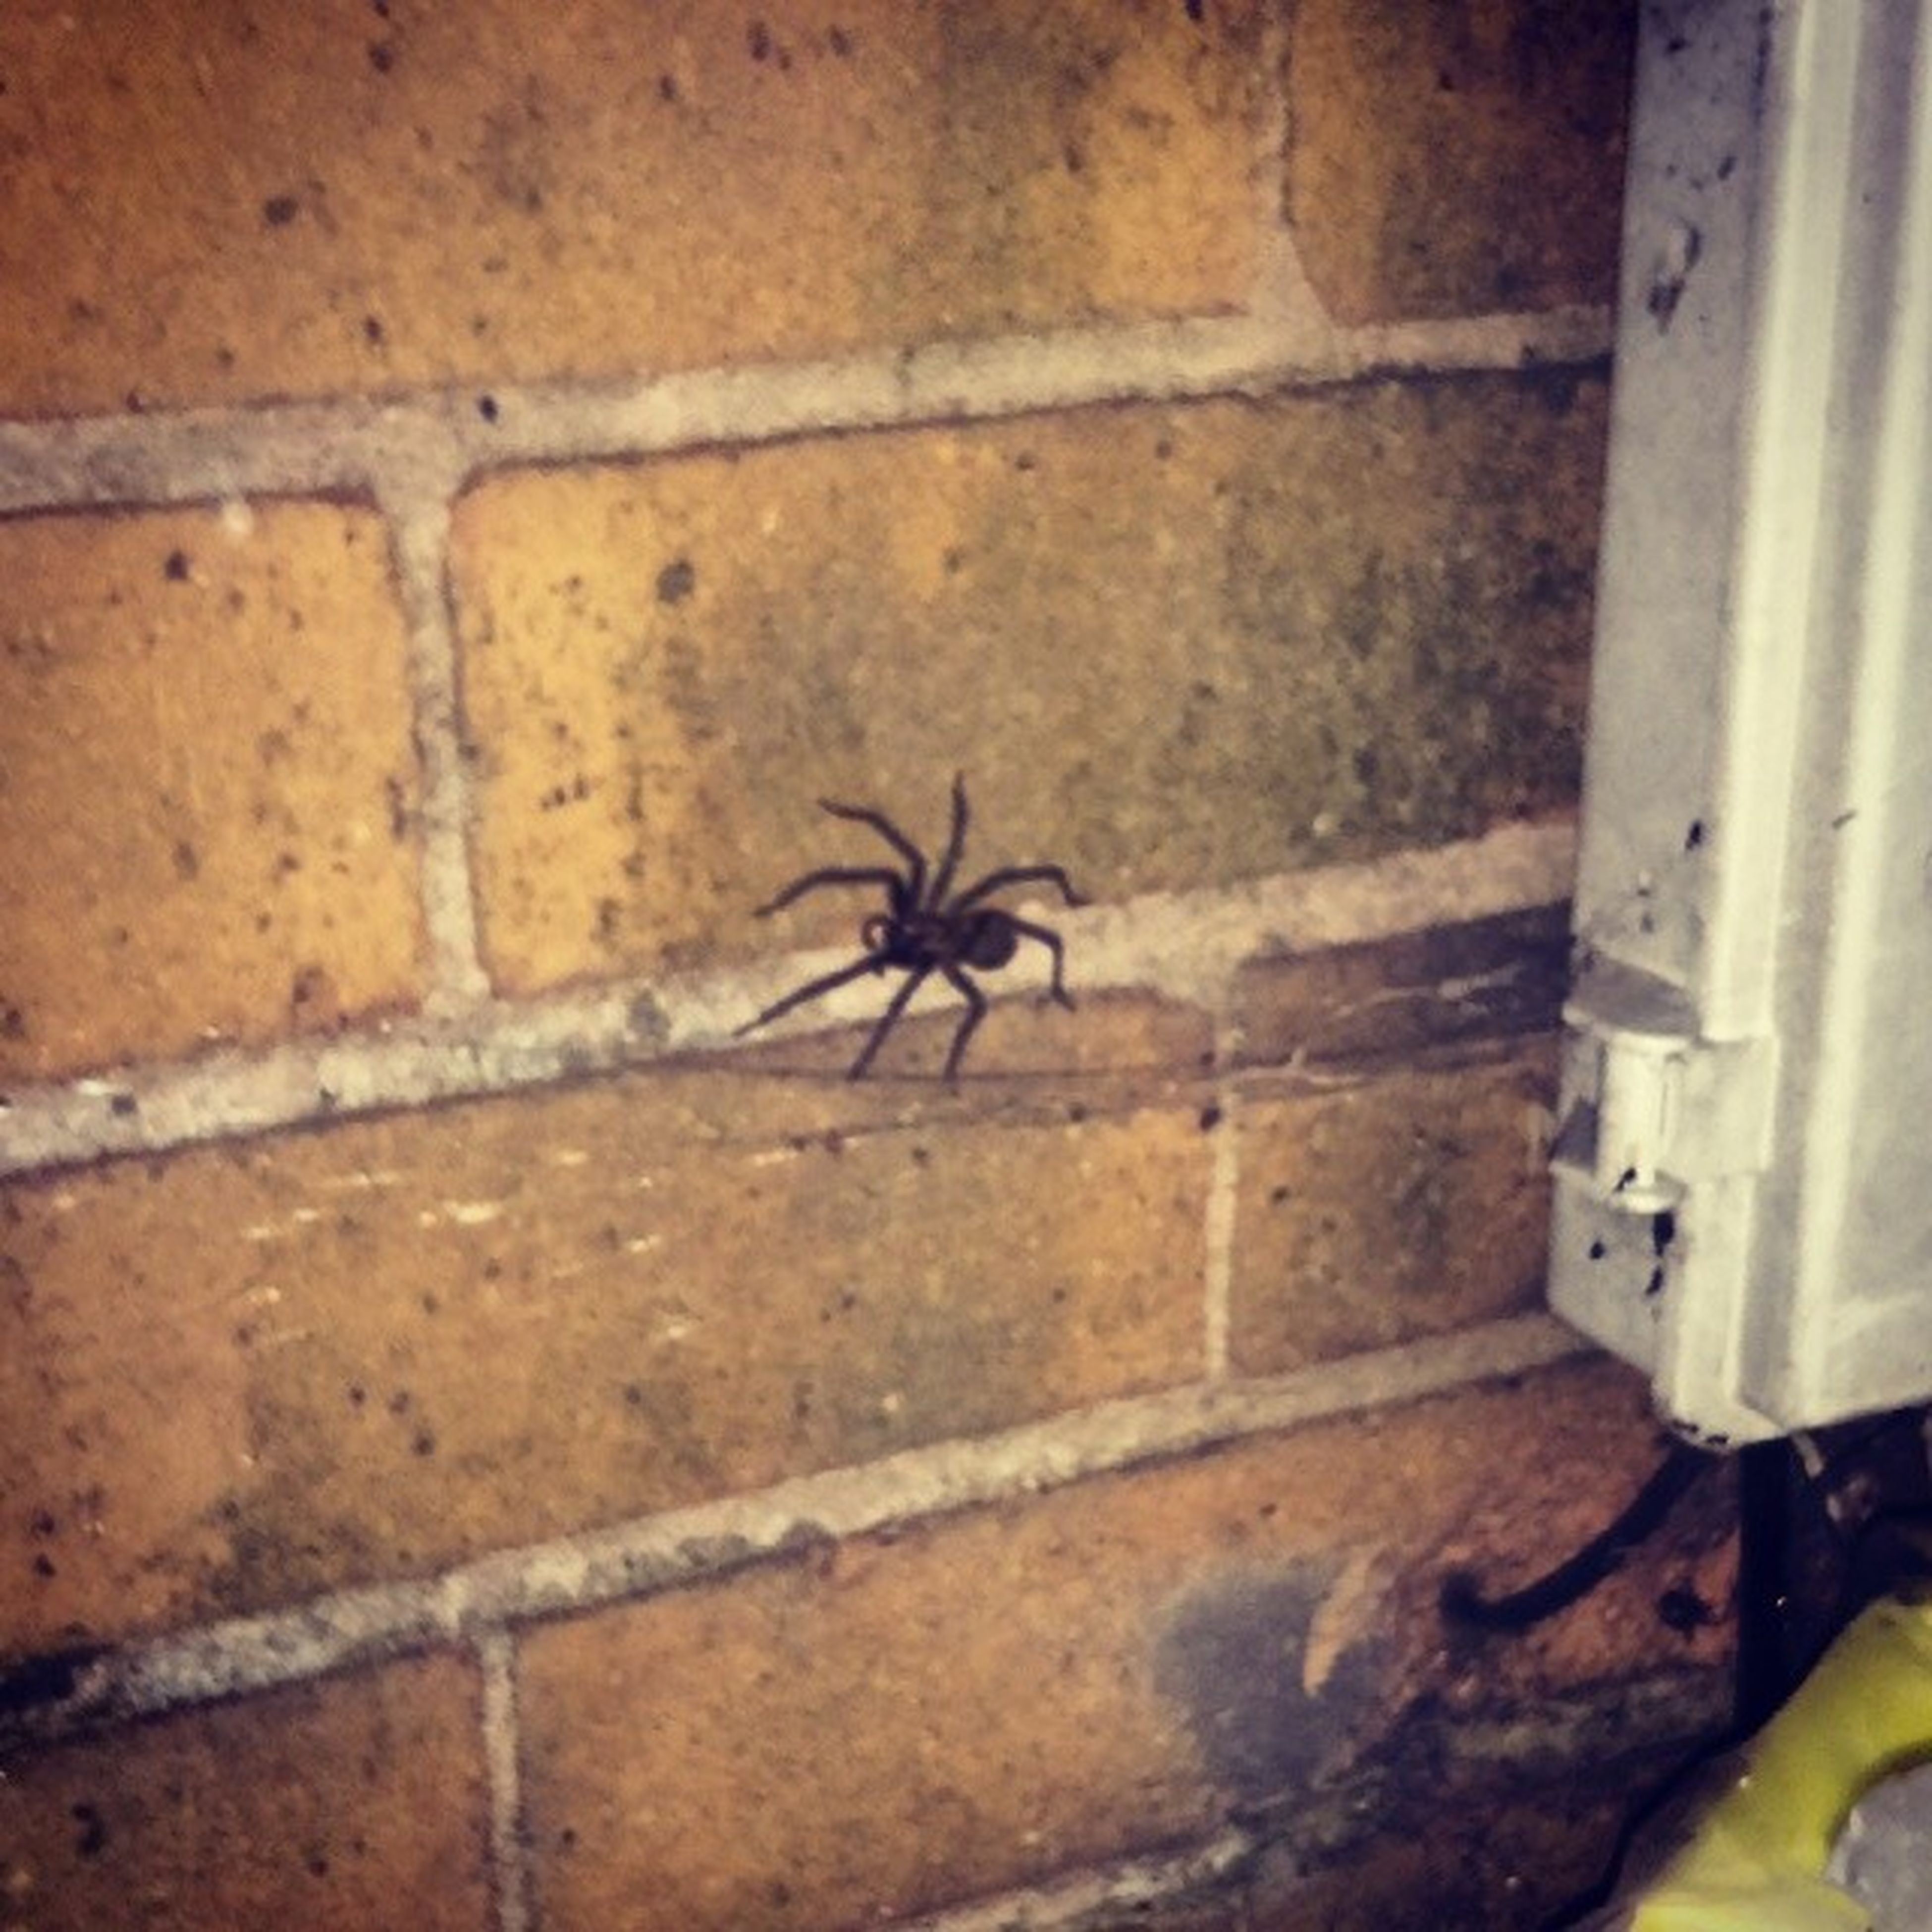 one animal, wall - building feature, animal themes, insect, architecture, built structure, animals in the wild, close-up, indoors, wildlife, wall, brick wall, no people, day, building exterior, high angle view, spider, damaged, abandoned